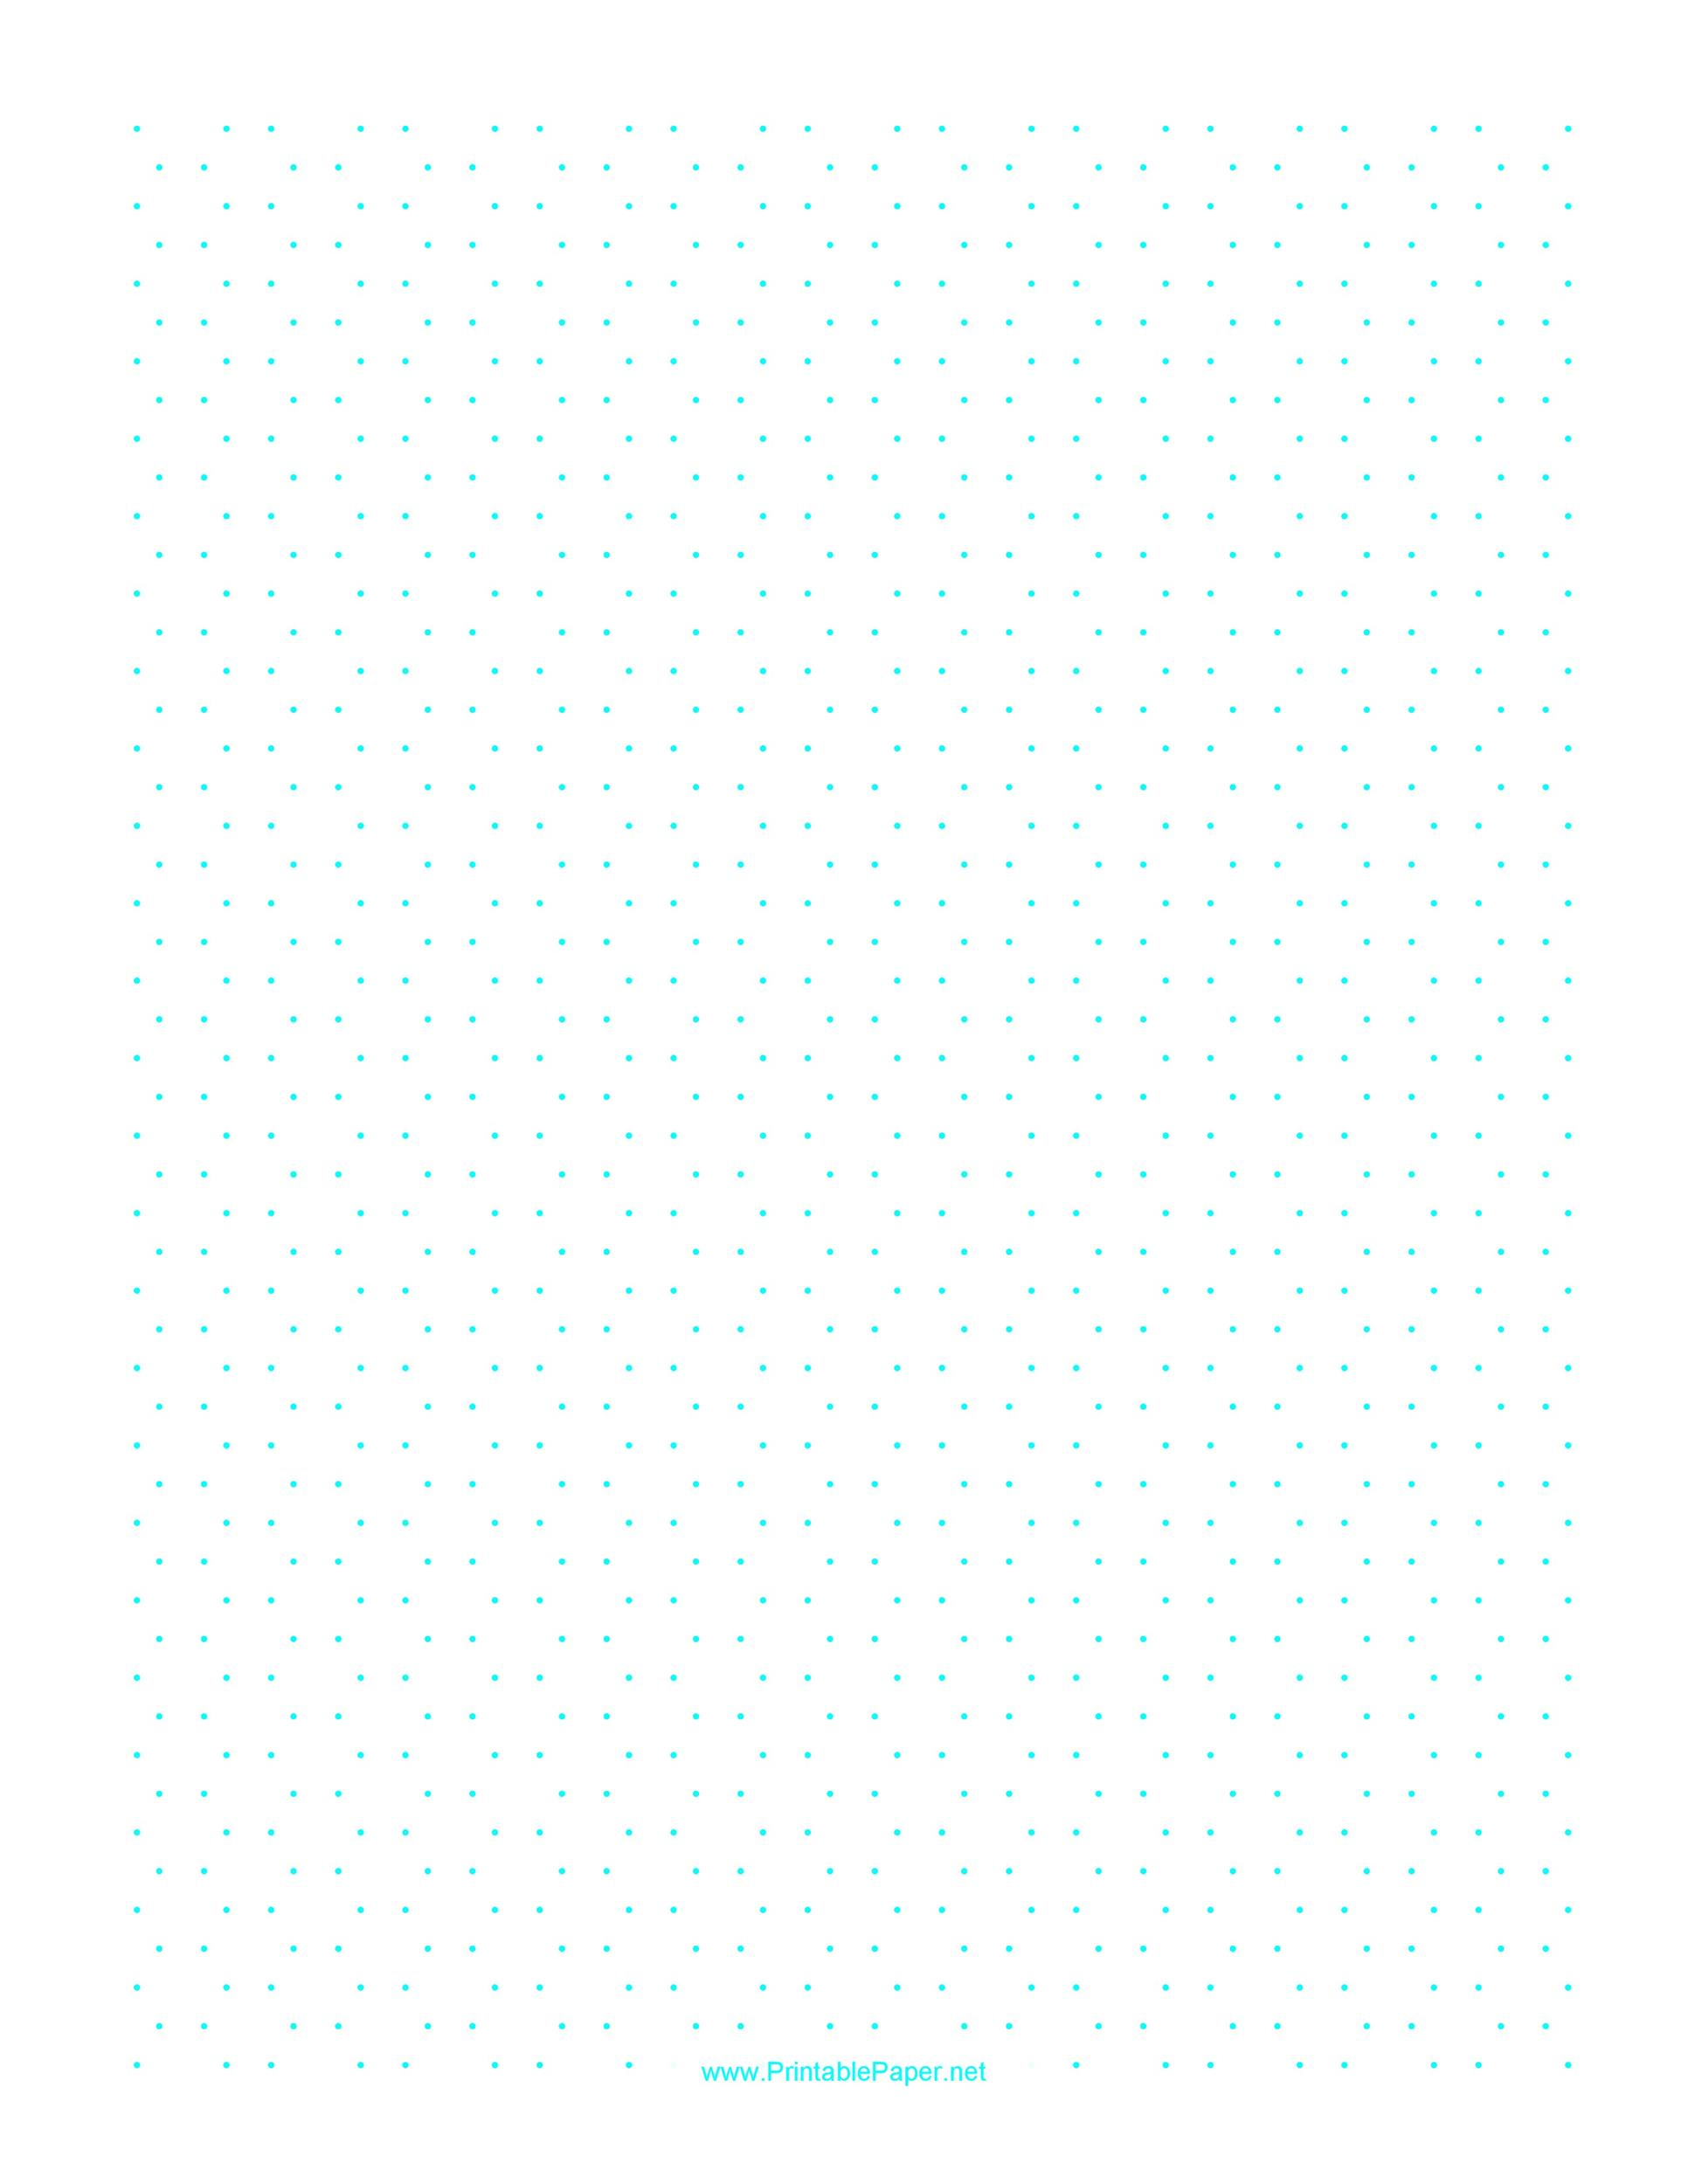 Free Graph Paper Template 24